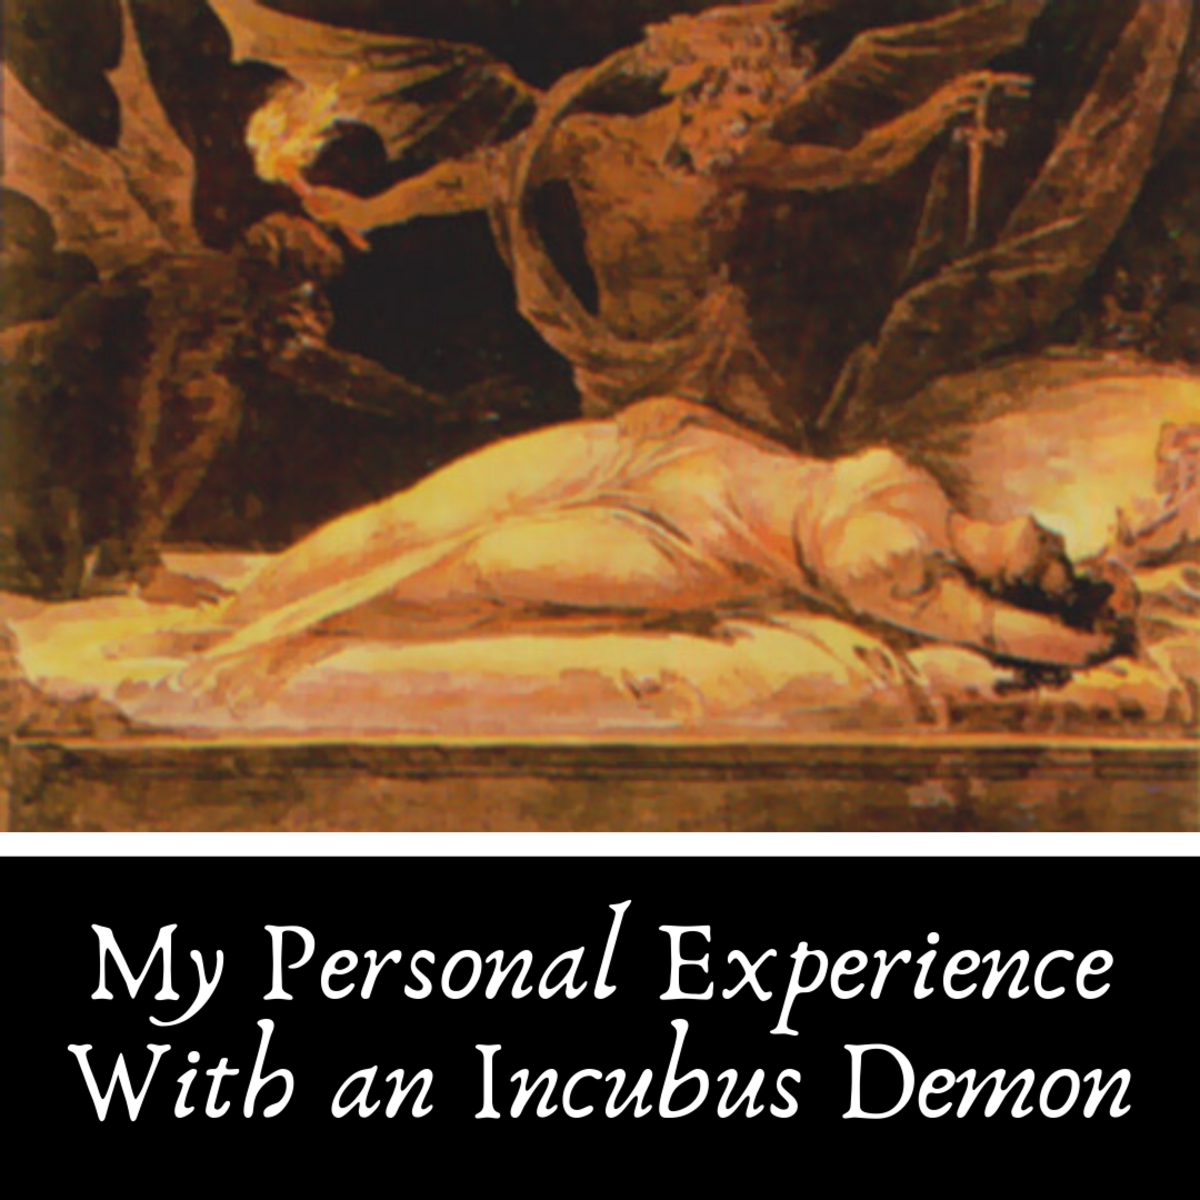 My Personal Experience With an Incubus Demon